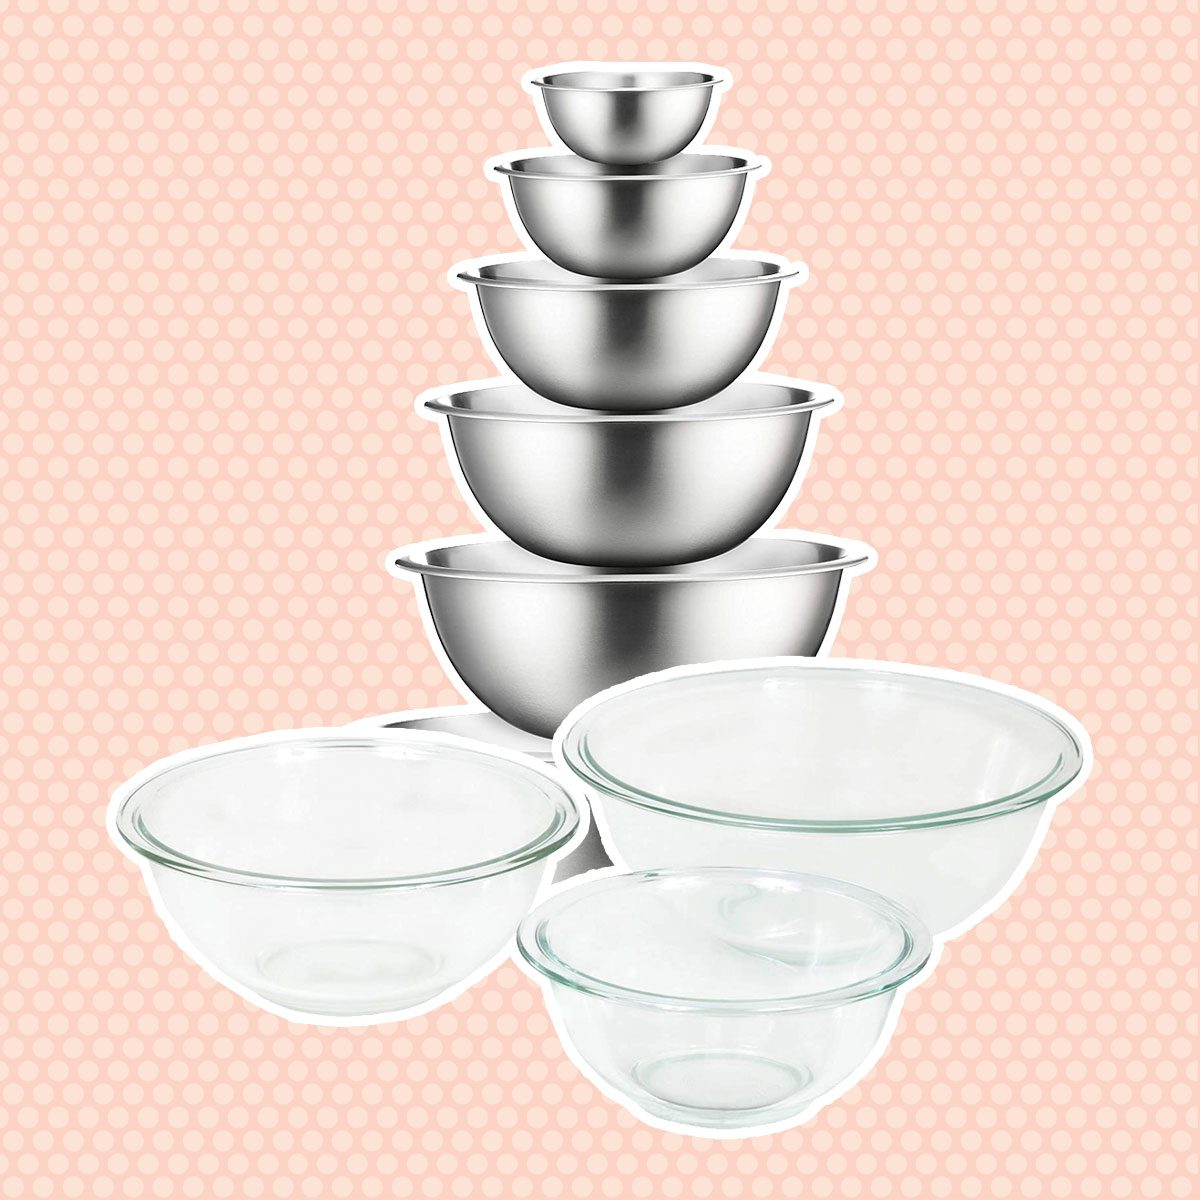 Stainless Steel or Glass Bowls